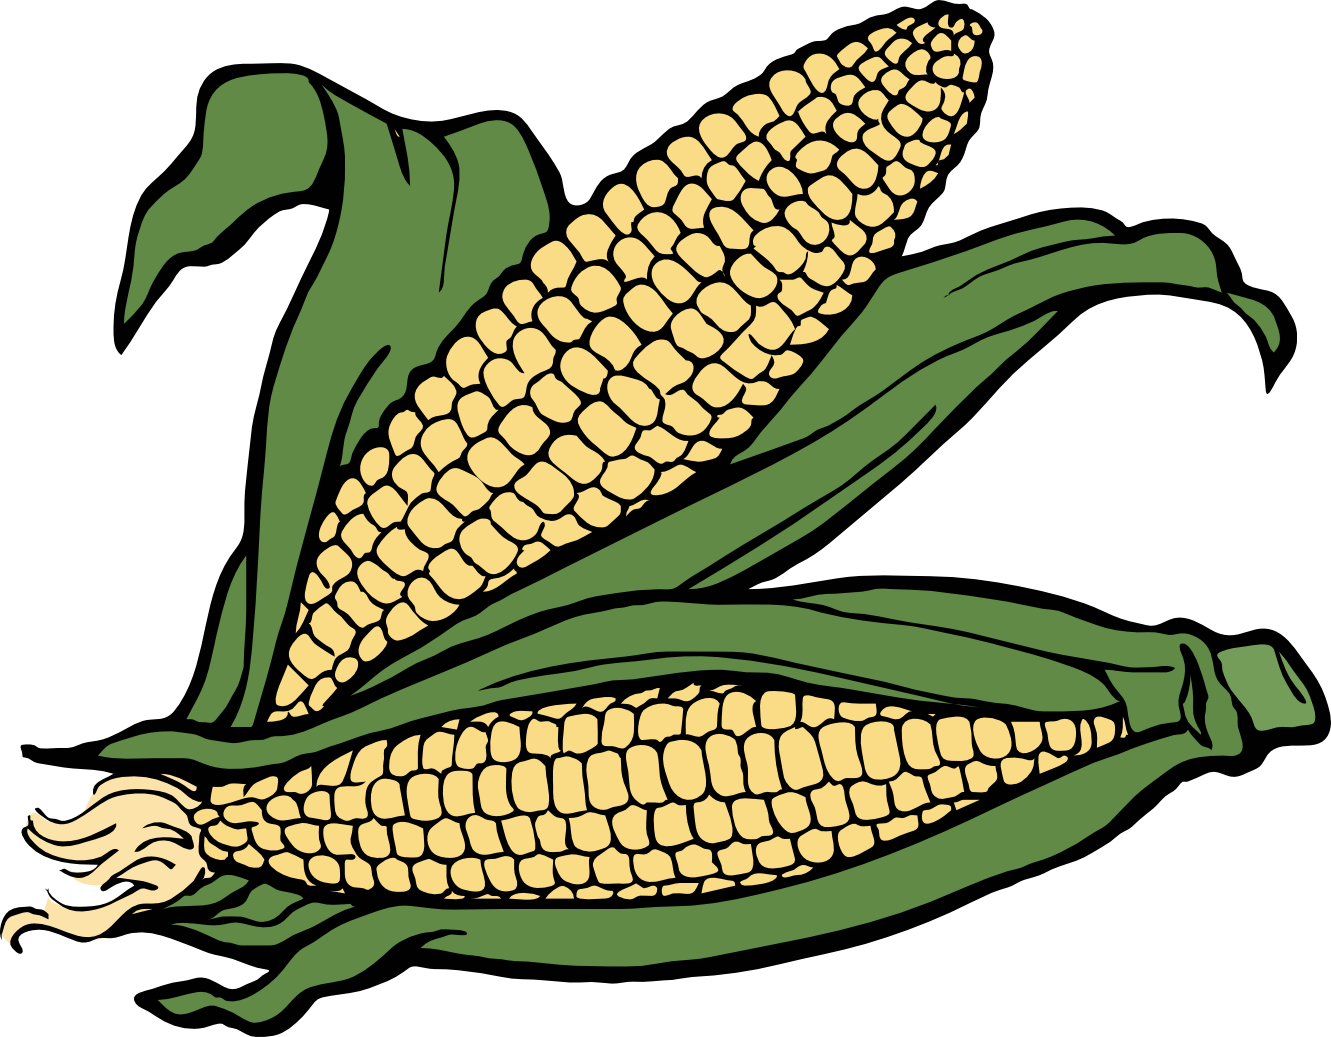 1331x1037 Corn Plant Clip Art Black And White Clipart Best, Corn Plant Clip